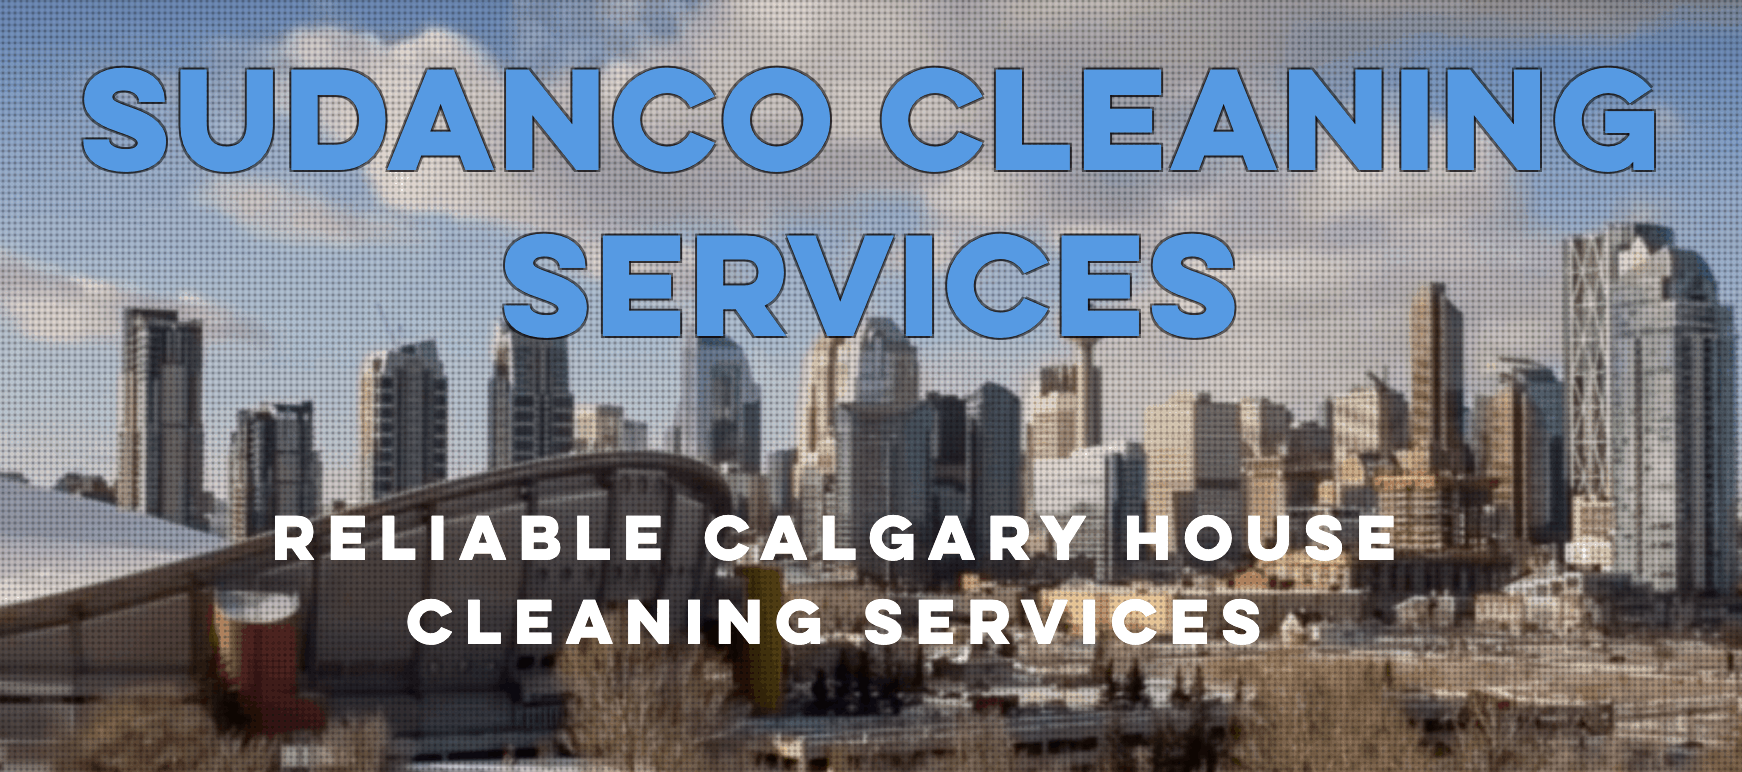 Sudanco cleaning